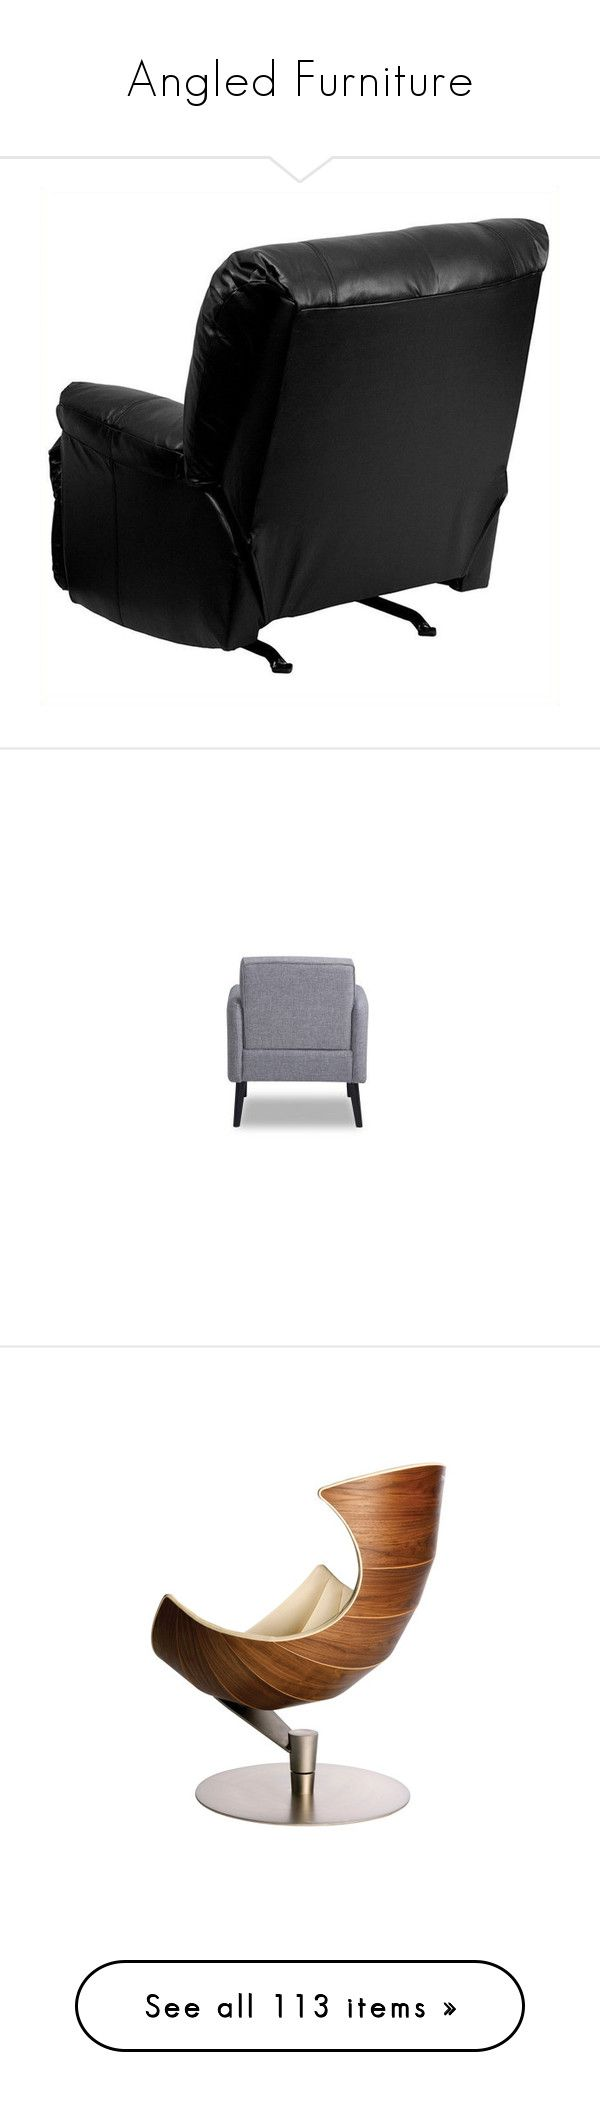 """Angled Furniture"" by mysfytdesigns ❤ liked on Polyvore featuring home, furniture, chairs, recliners, chair, black chair, cushioned rocking chair, contemporary leather recliners, black leather chair and contemporary rocking chair"